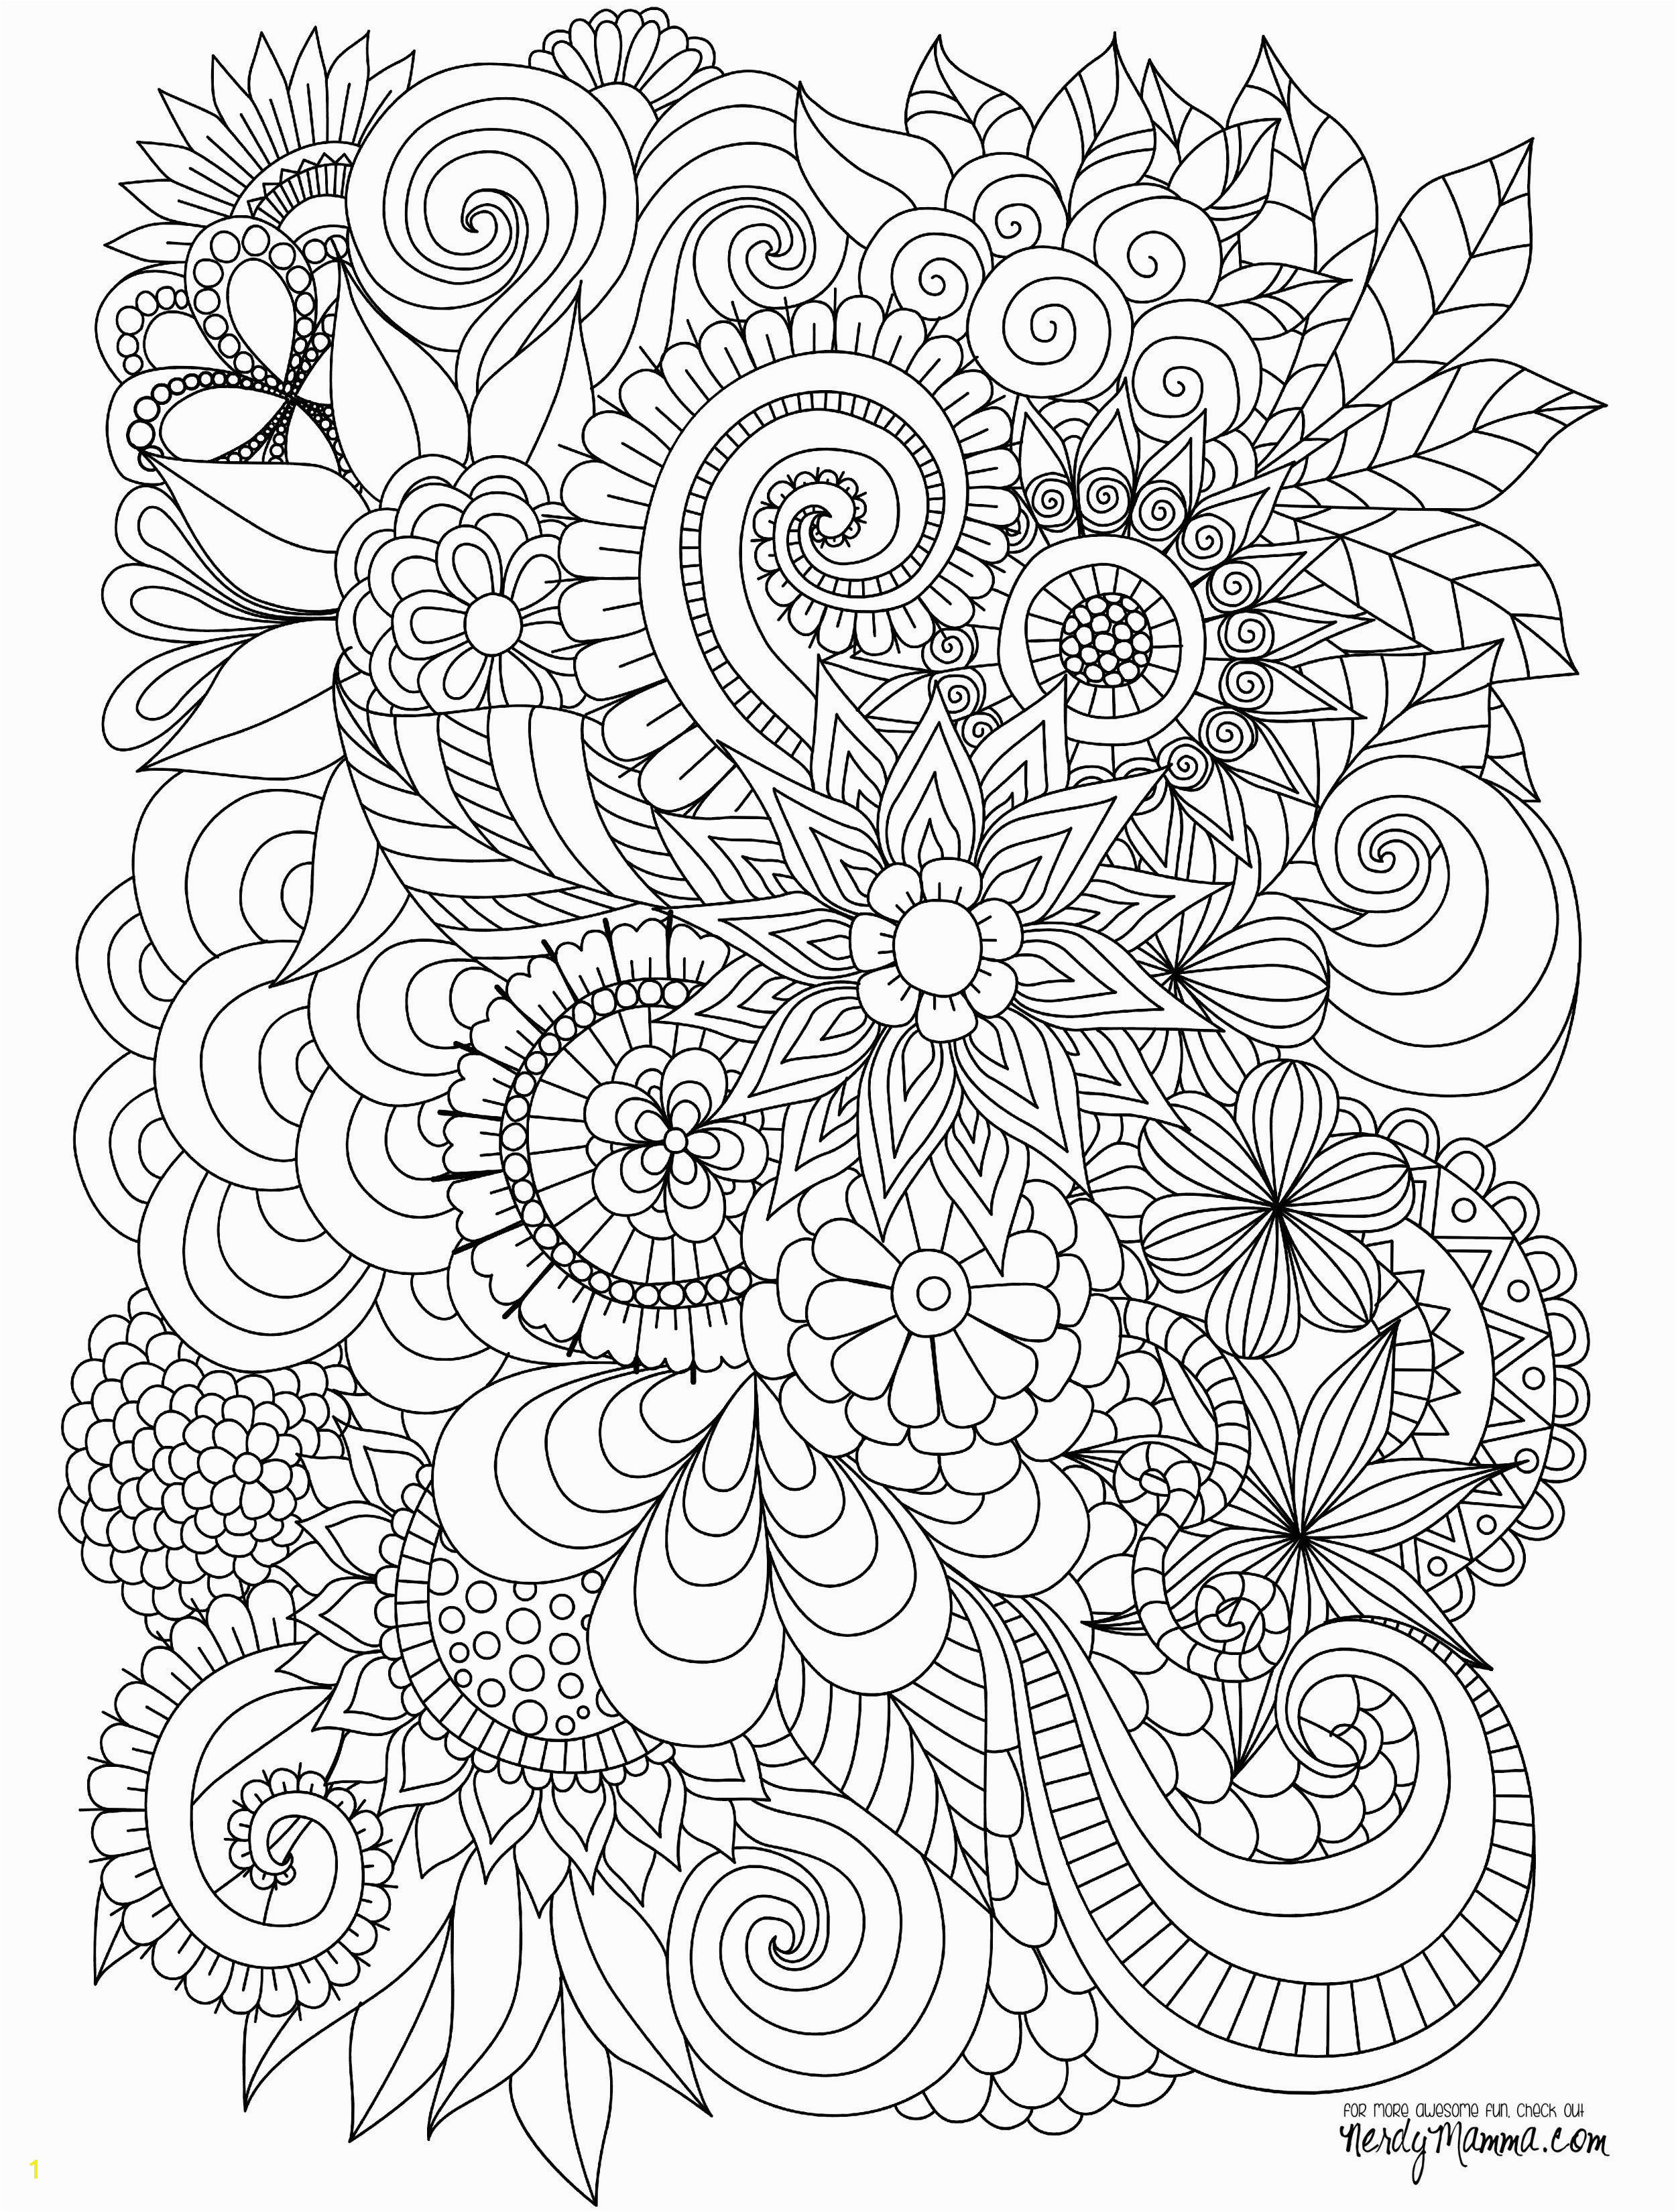 Flowers Abstract Coloring pages colouring adult detailed advanced printable Kleuren voor volwassenen coloriage pour adulte anti stress kleurplaat voor